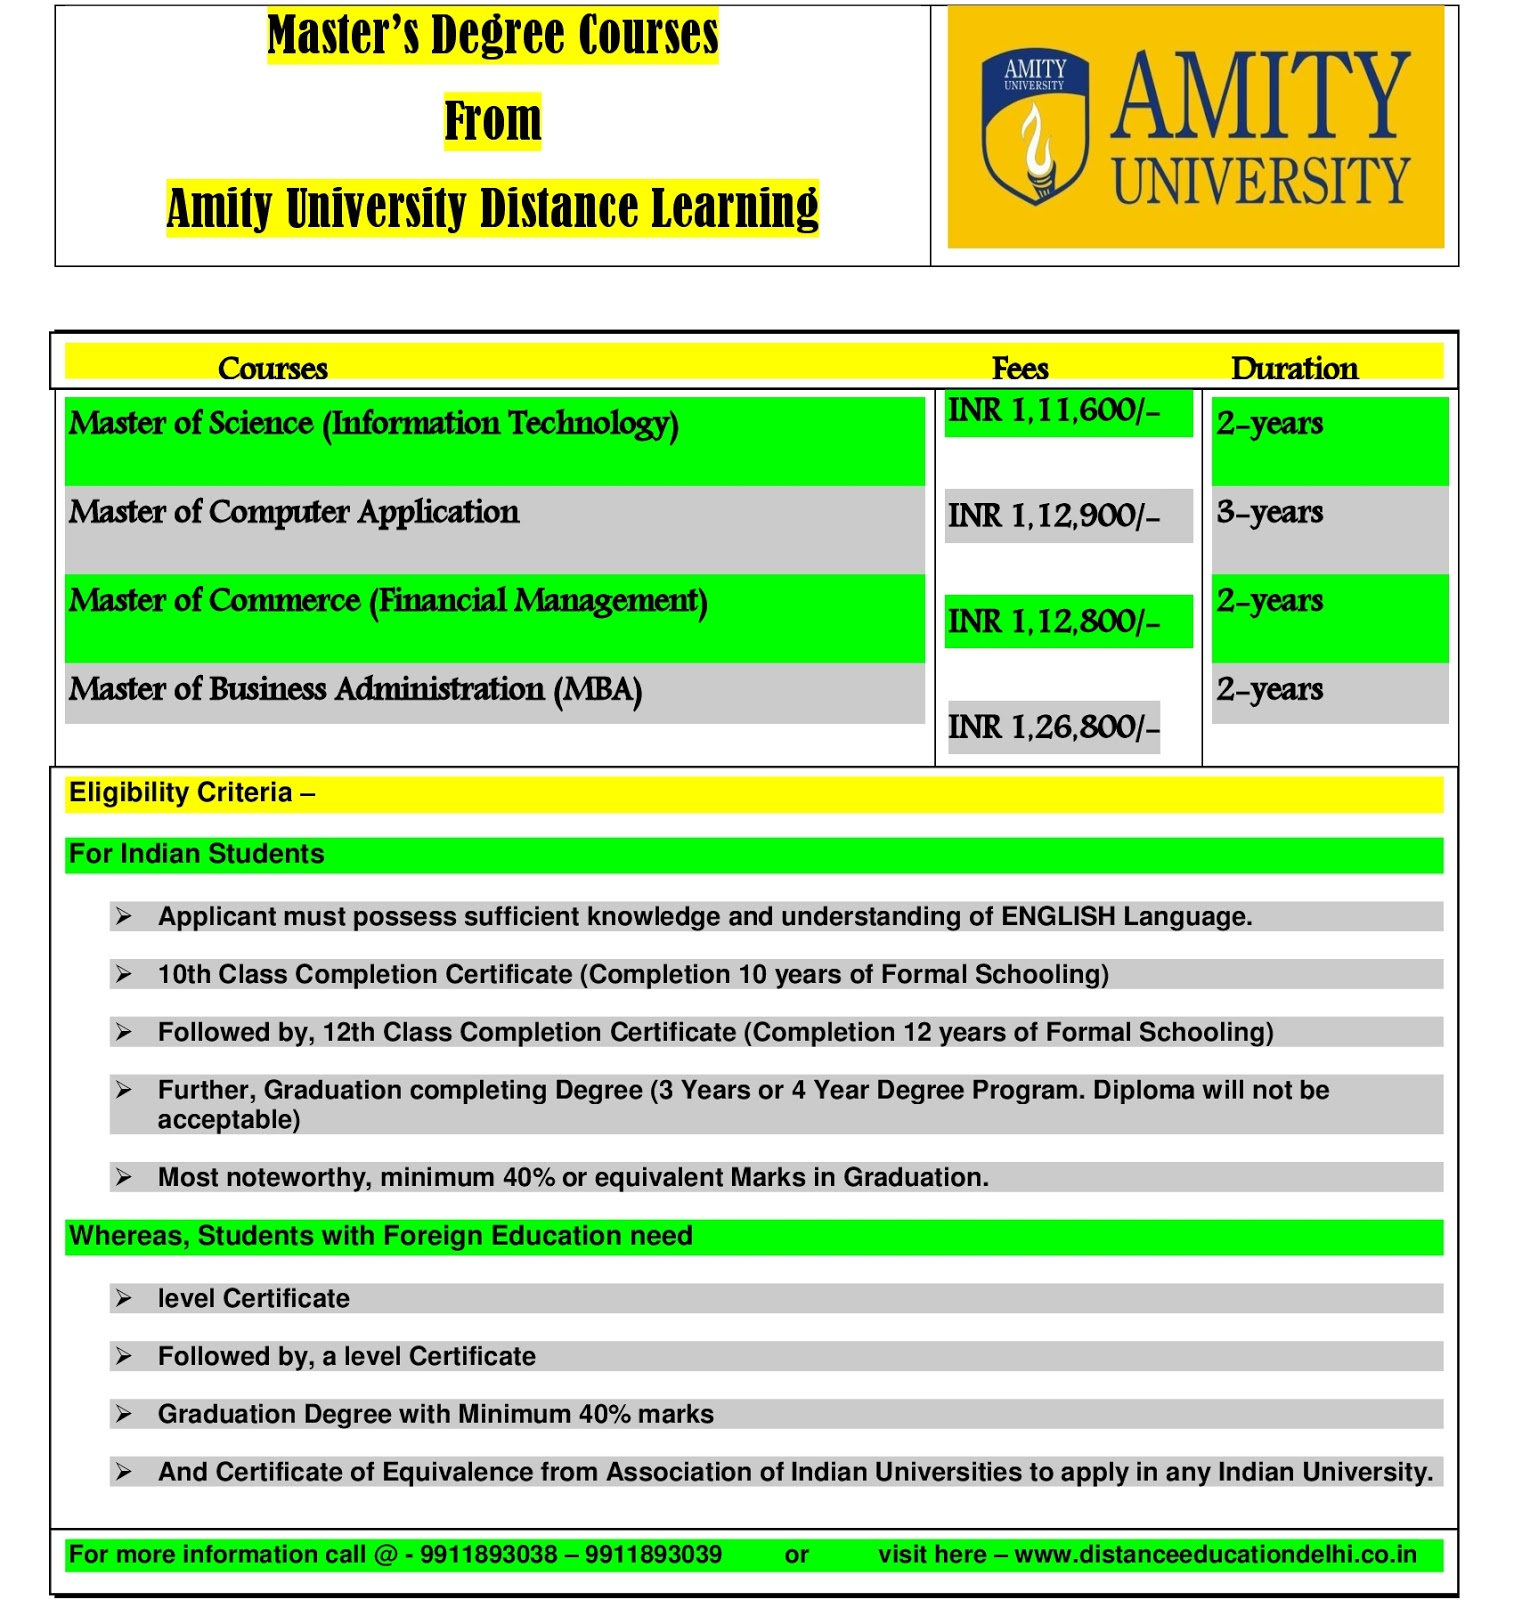 Masters courses from amity university distance learning